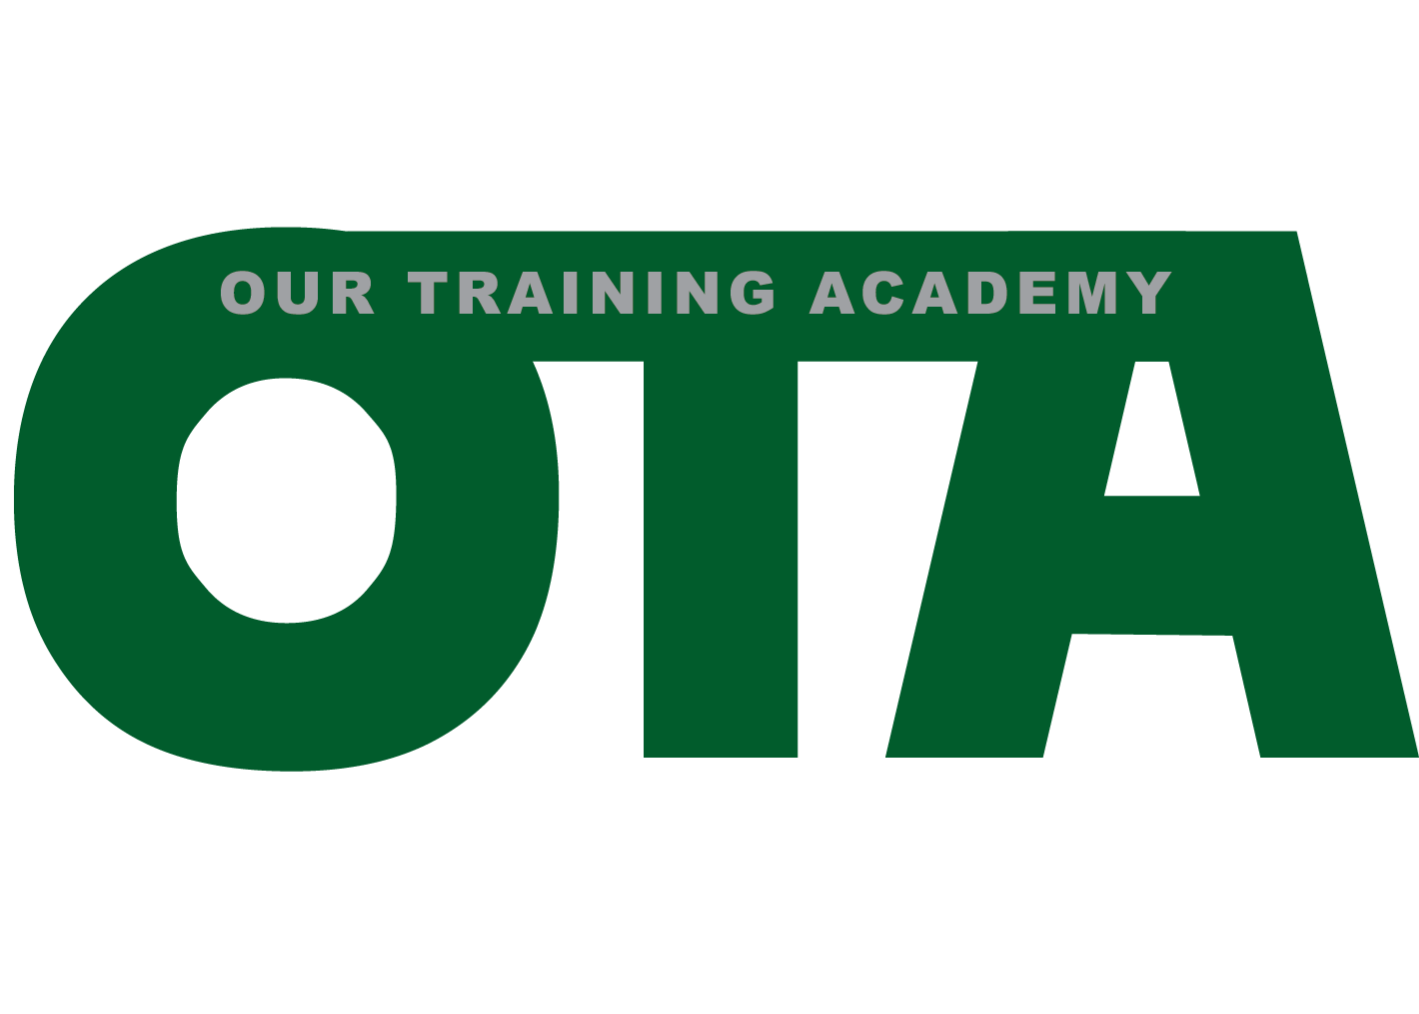 Our Training Academy